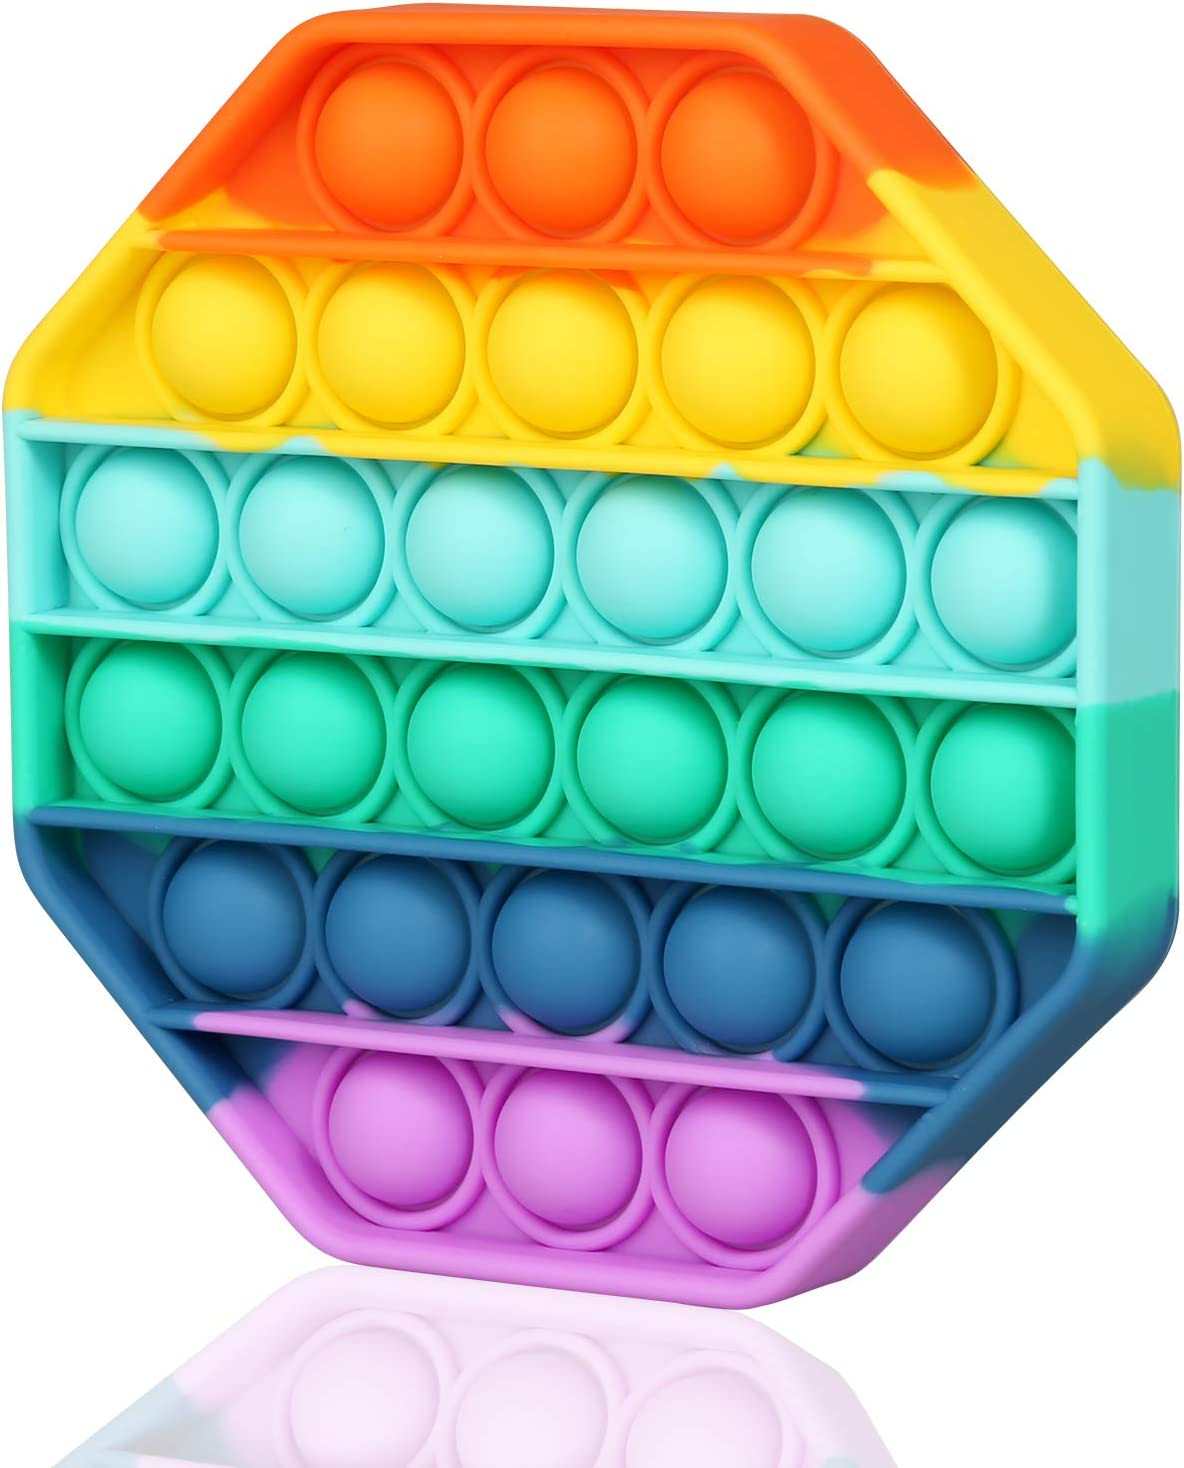 Pop Up It Fidget Toys Push On Pop Rainbow Bubble Sensory Toys for Anxiety & Stress Relief Autism Learning Materials, Gifts Toy for Toddlers Boys Girls Kids Teens Older(1 Pack-Rainbow Octagon)